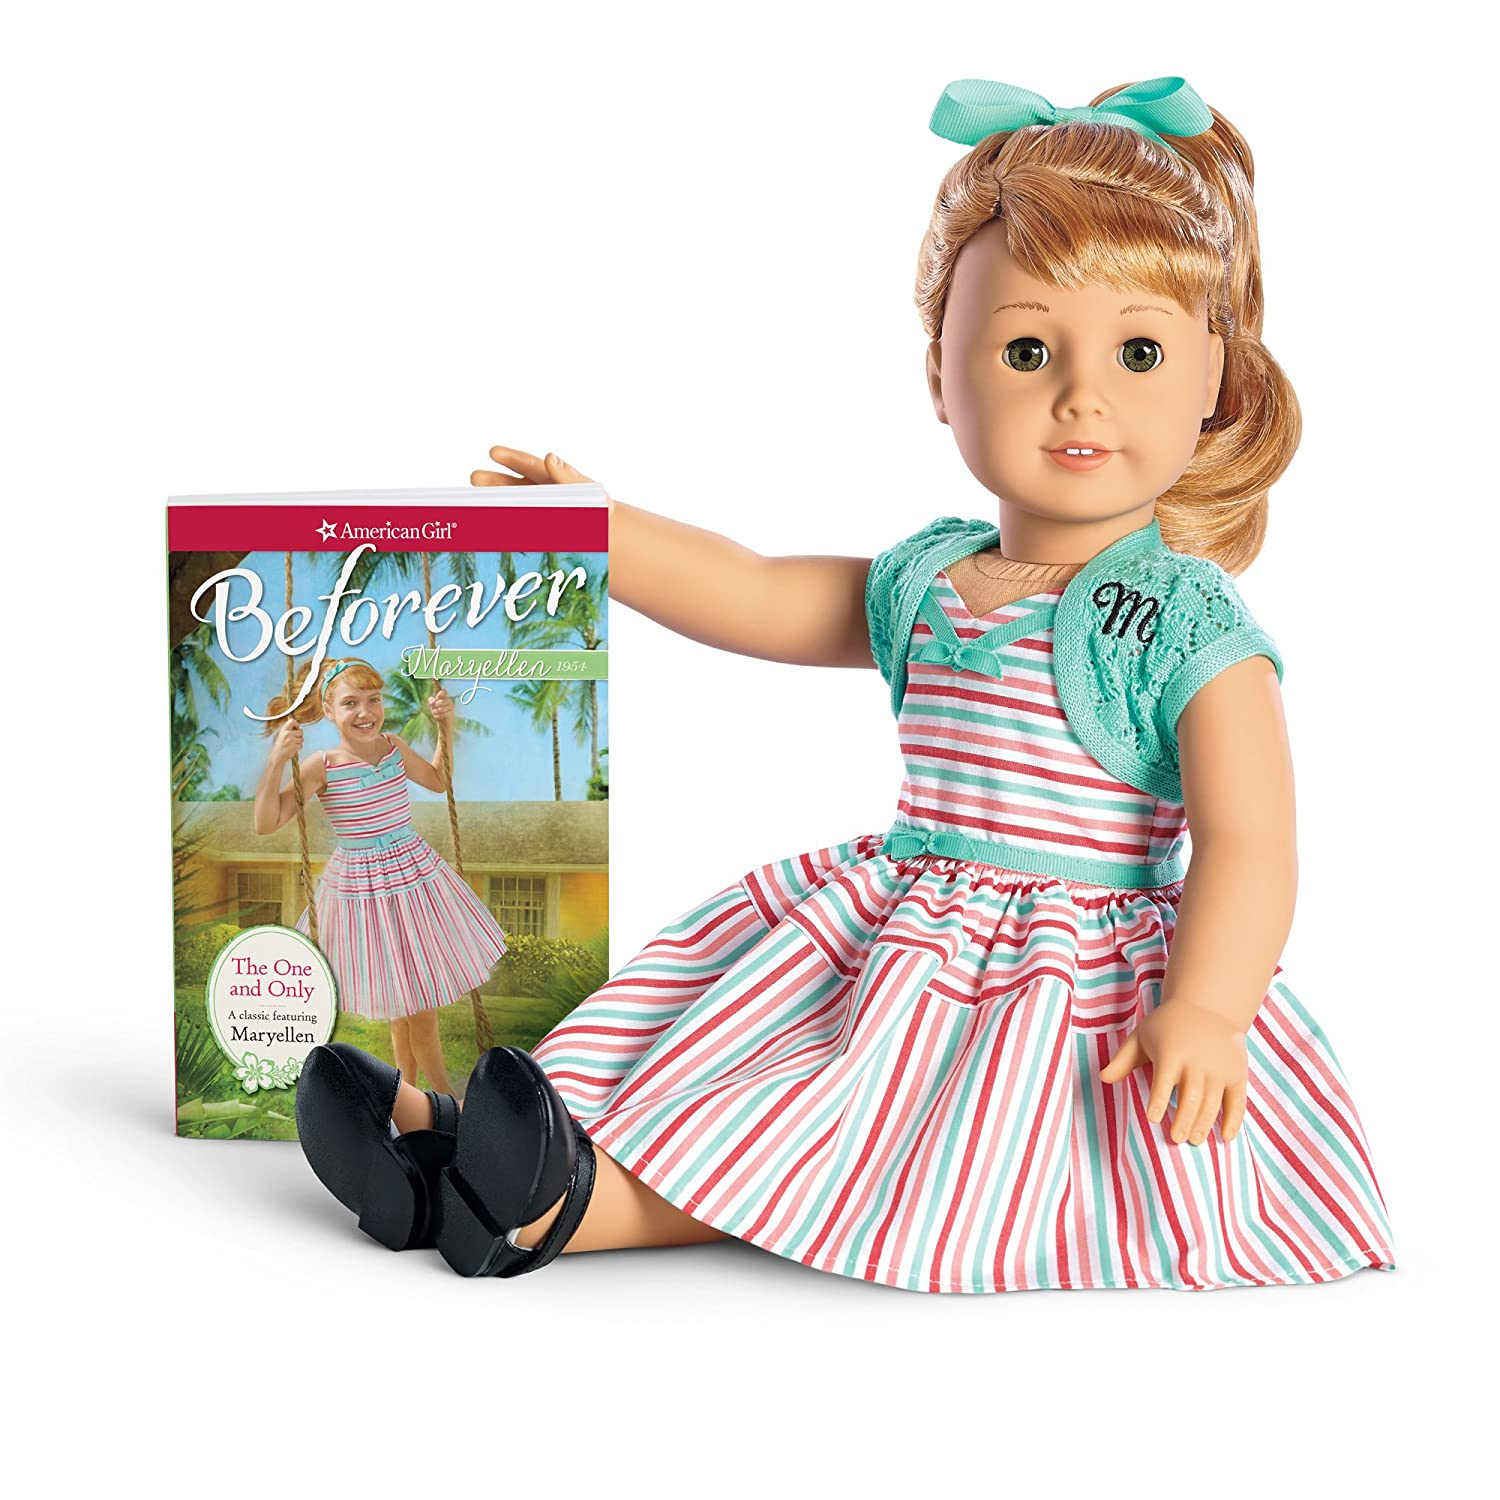 amazoncom american girl maryellen doll and book toys games - Ameeican Girl Doll